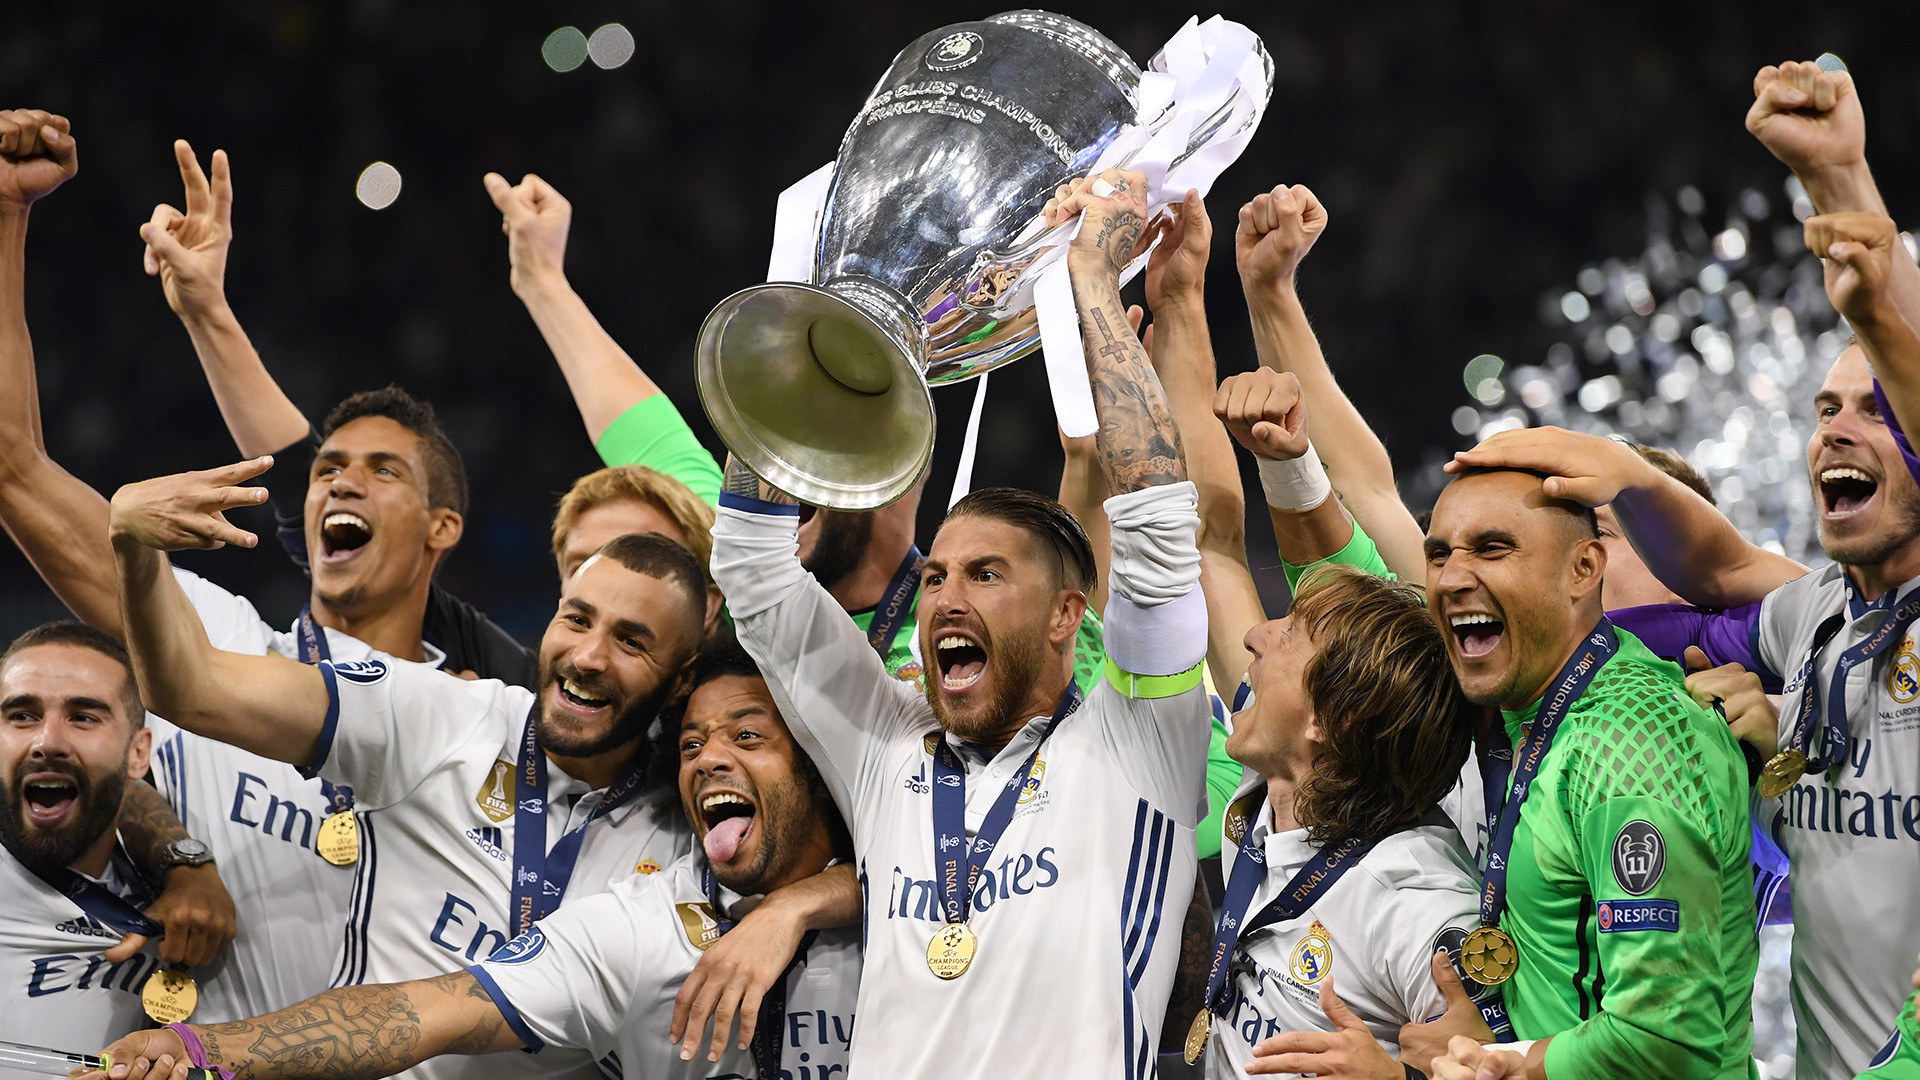 1920x1080 1920x1080 Real Madrid celebrating Champions League · Download · Real Madrid Widescreen Wallpapers